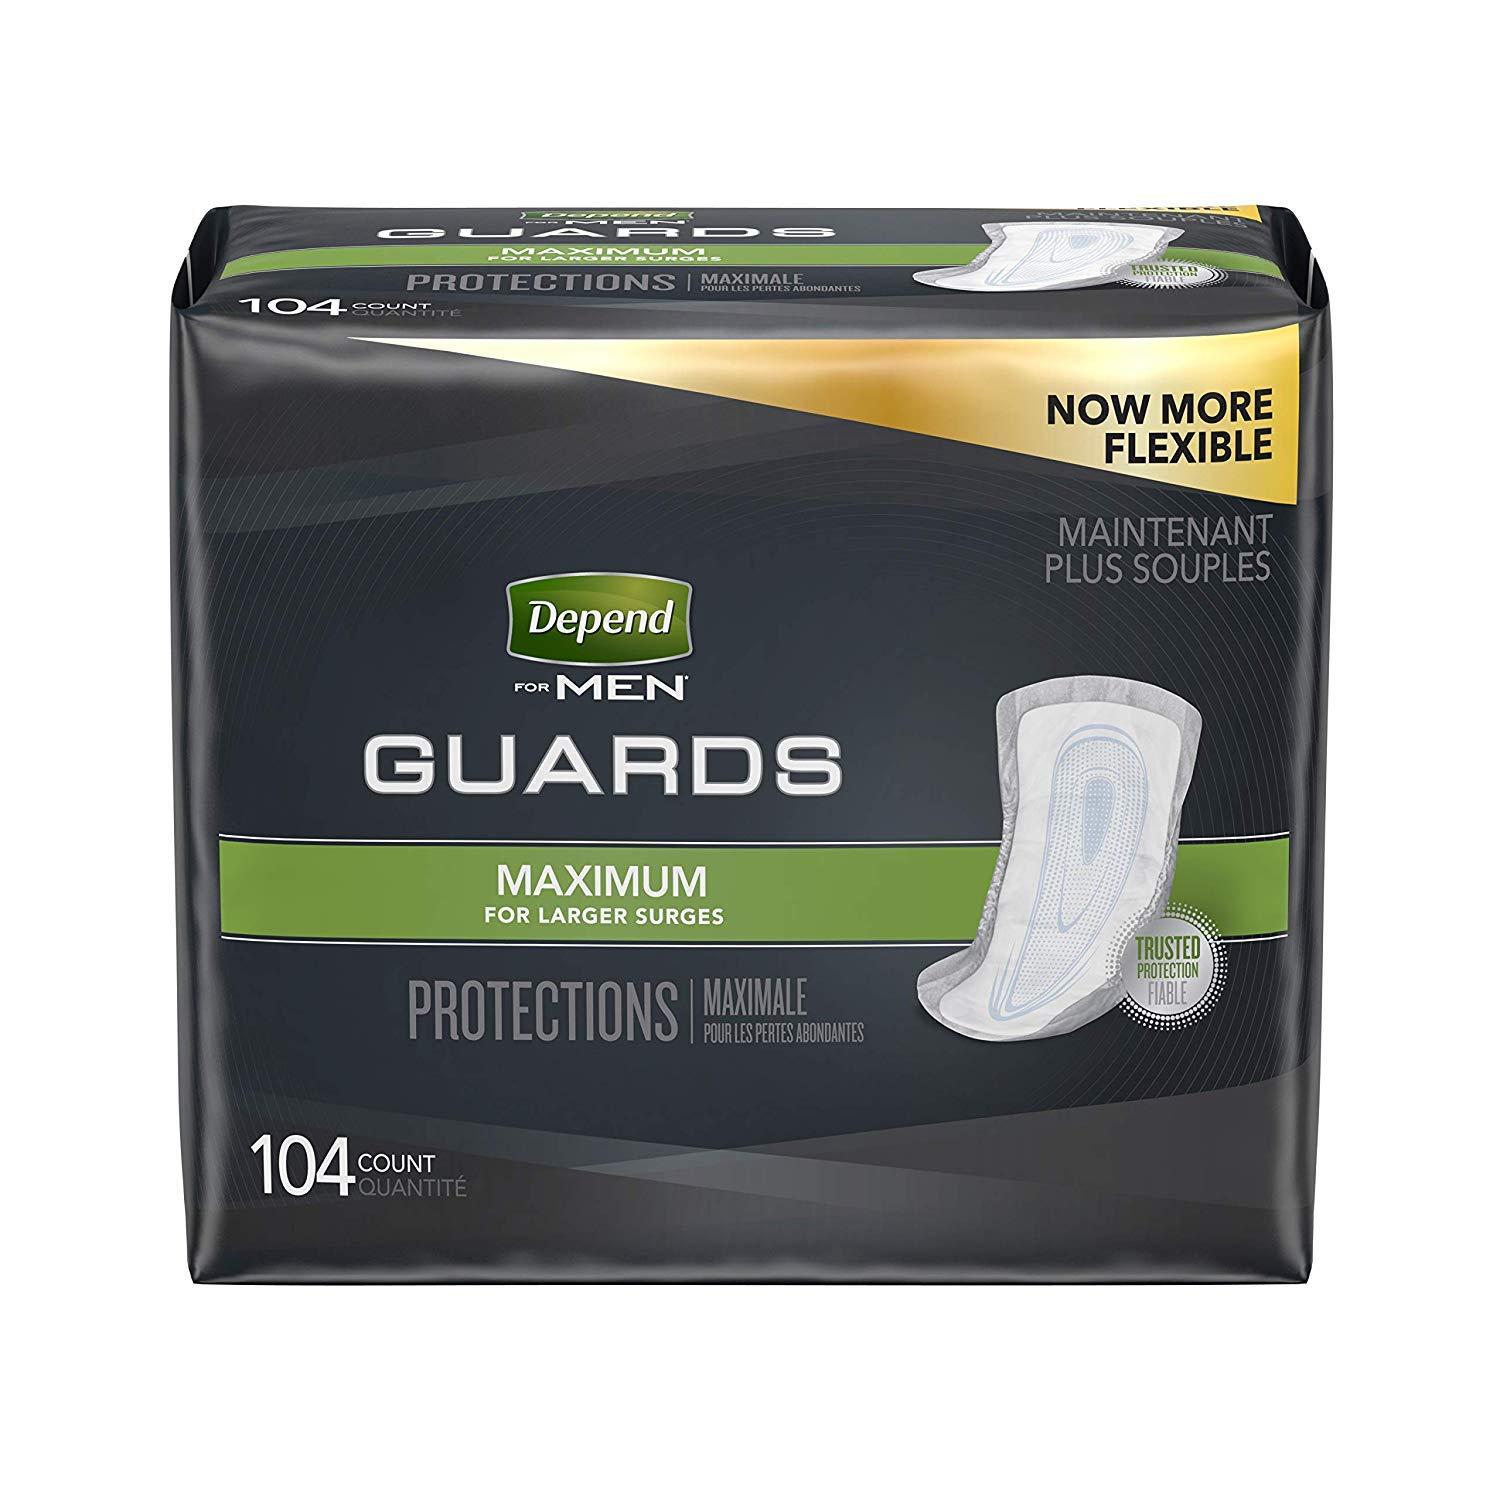 Depend Incontinence Guards for Men, Maximum Absorbency, 2 Packs of 52, 104 Total Count (Packaging May Vary) (4 Pack (104 Count))